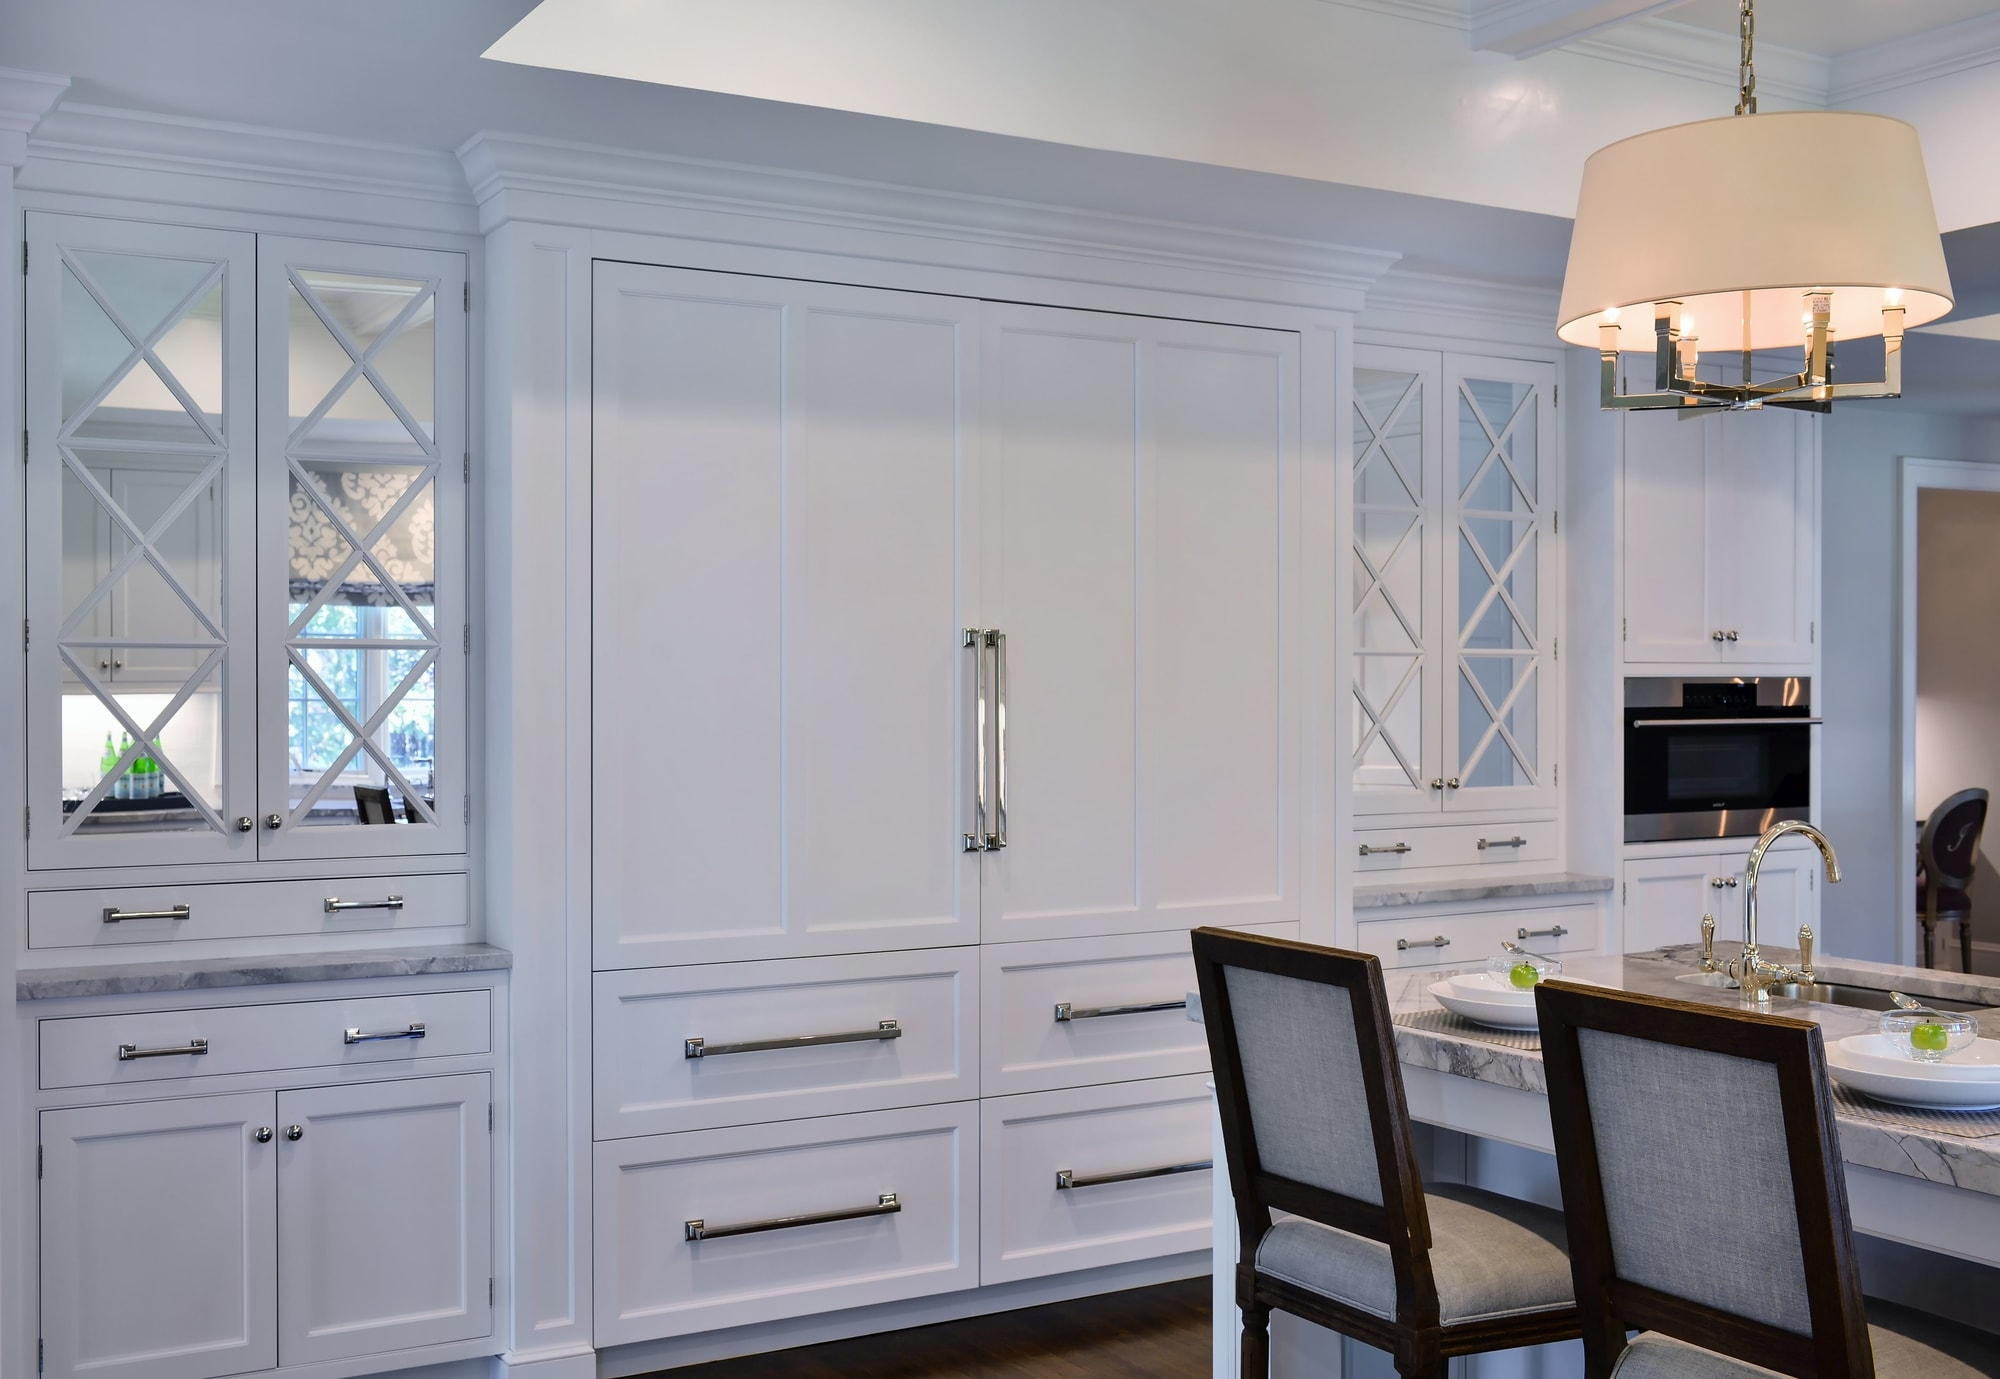 Transitional style kitchen with large cabinet and pull out drawers